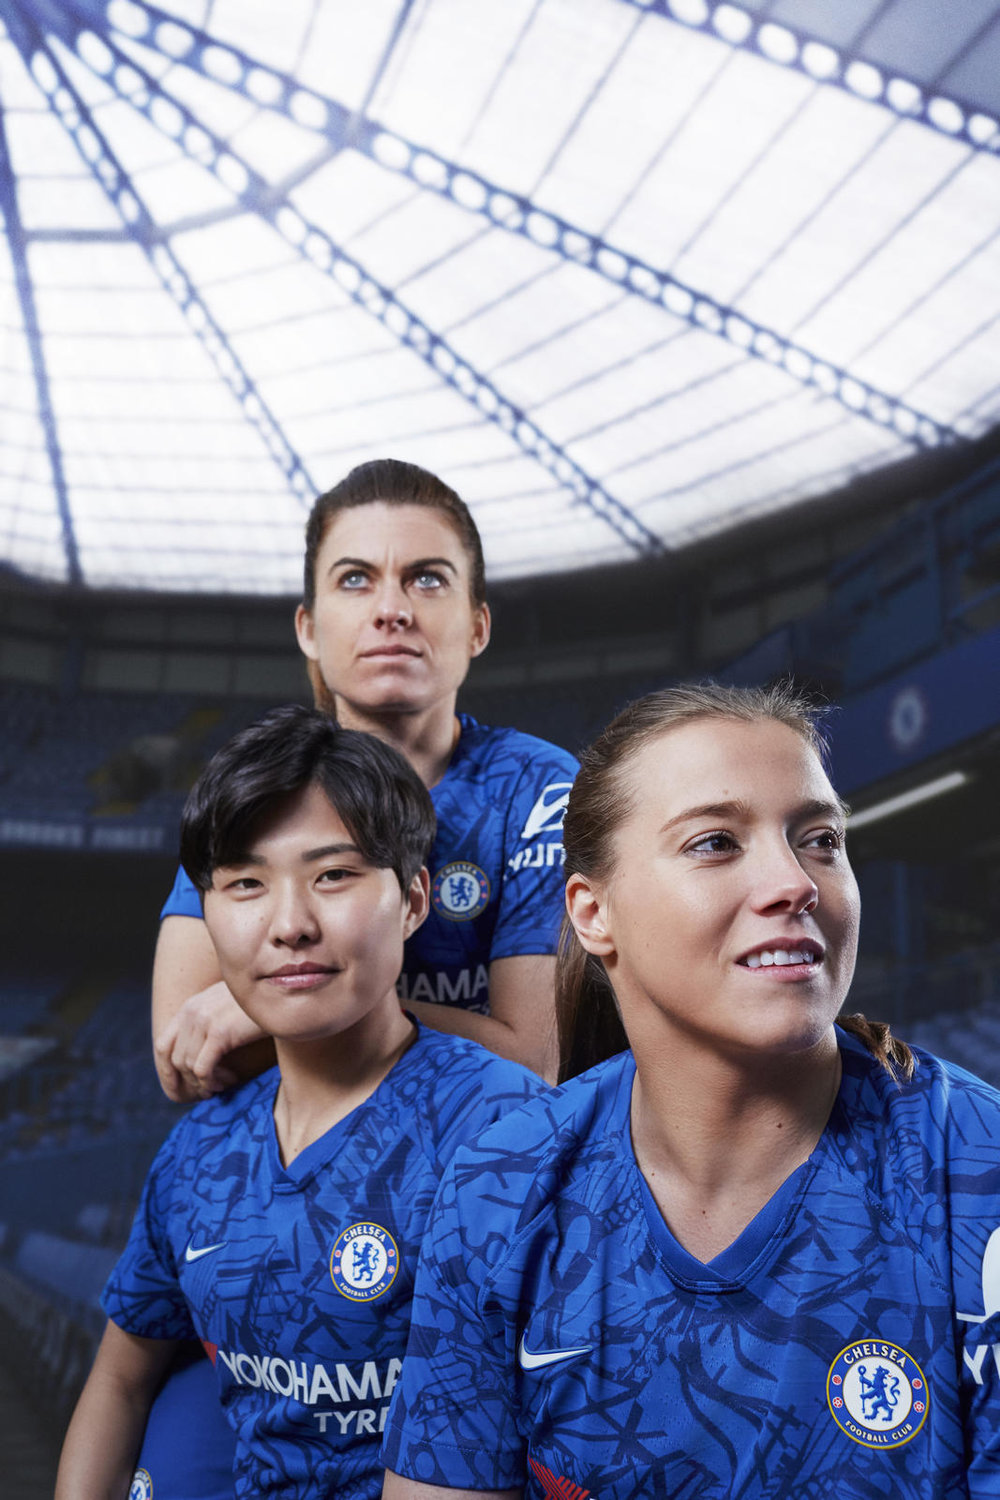 Nike_ChelseaFC_HomeKit_2019-20_2_native_1600.jpg